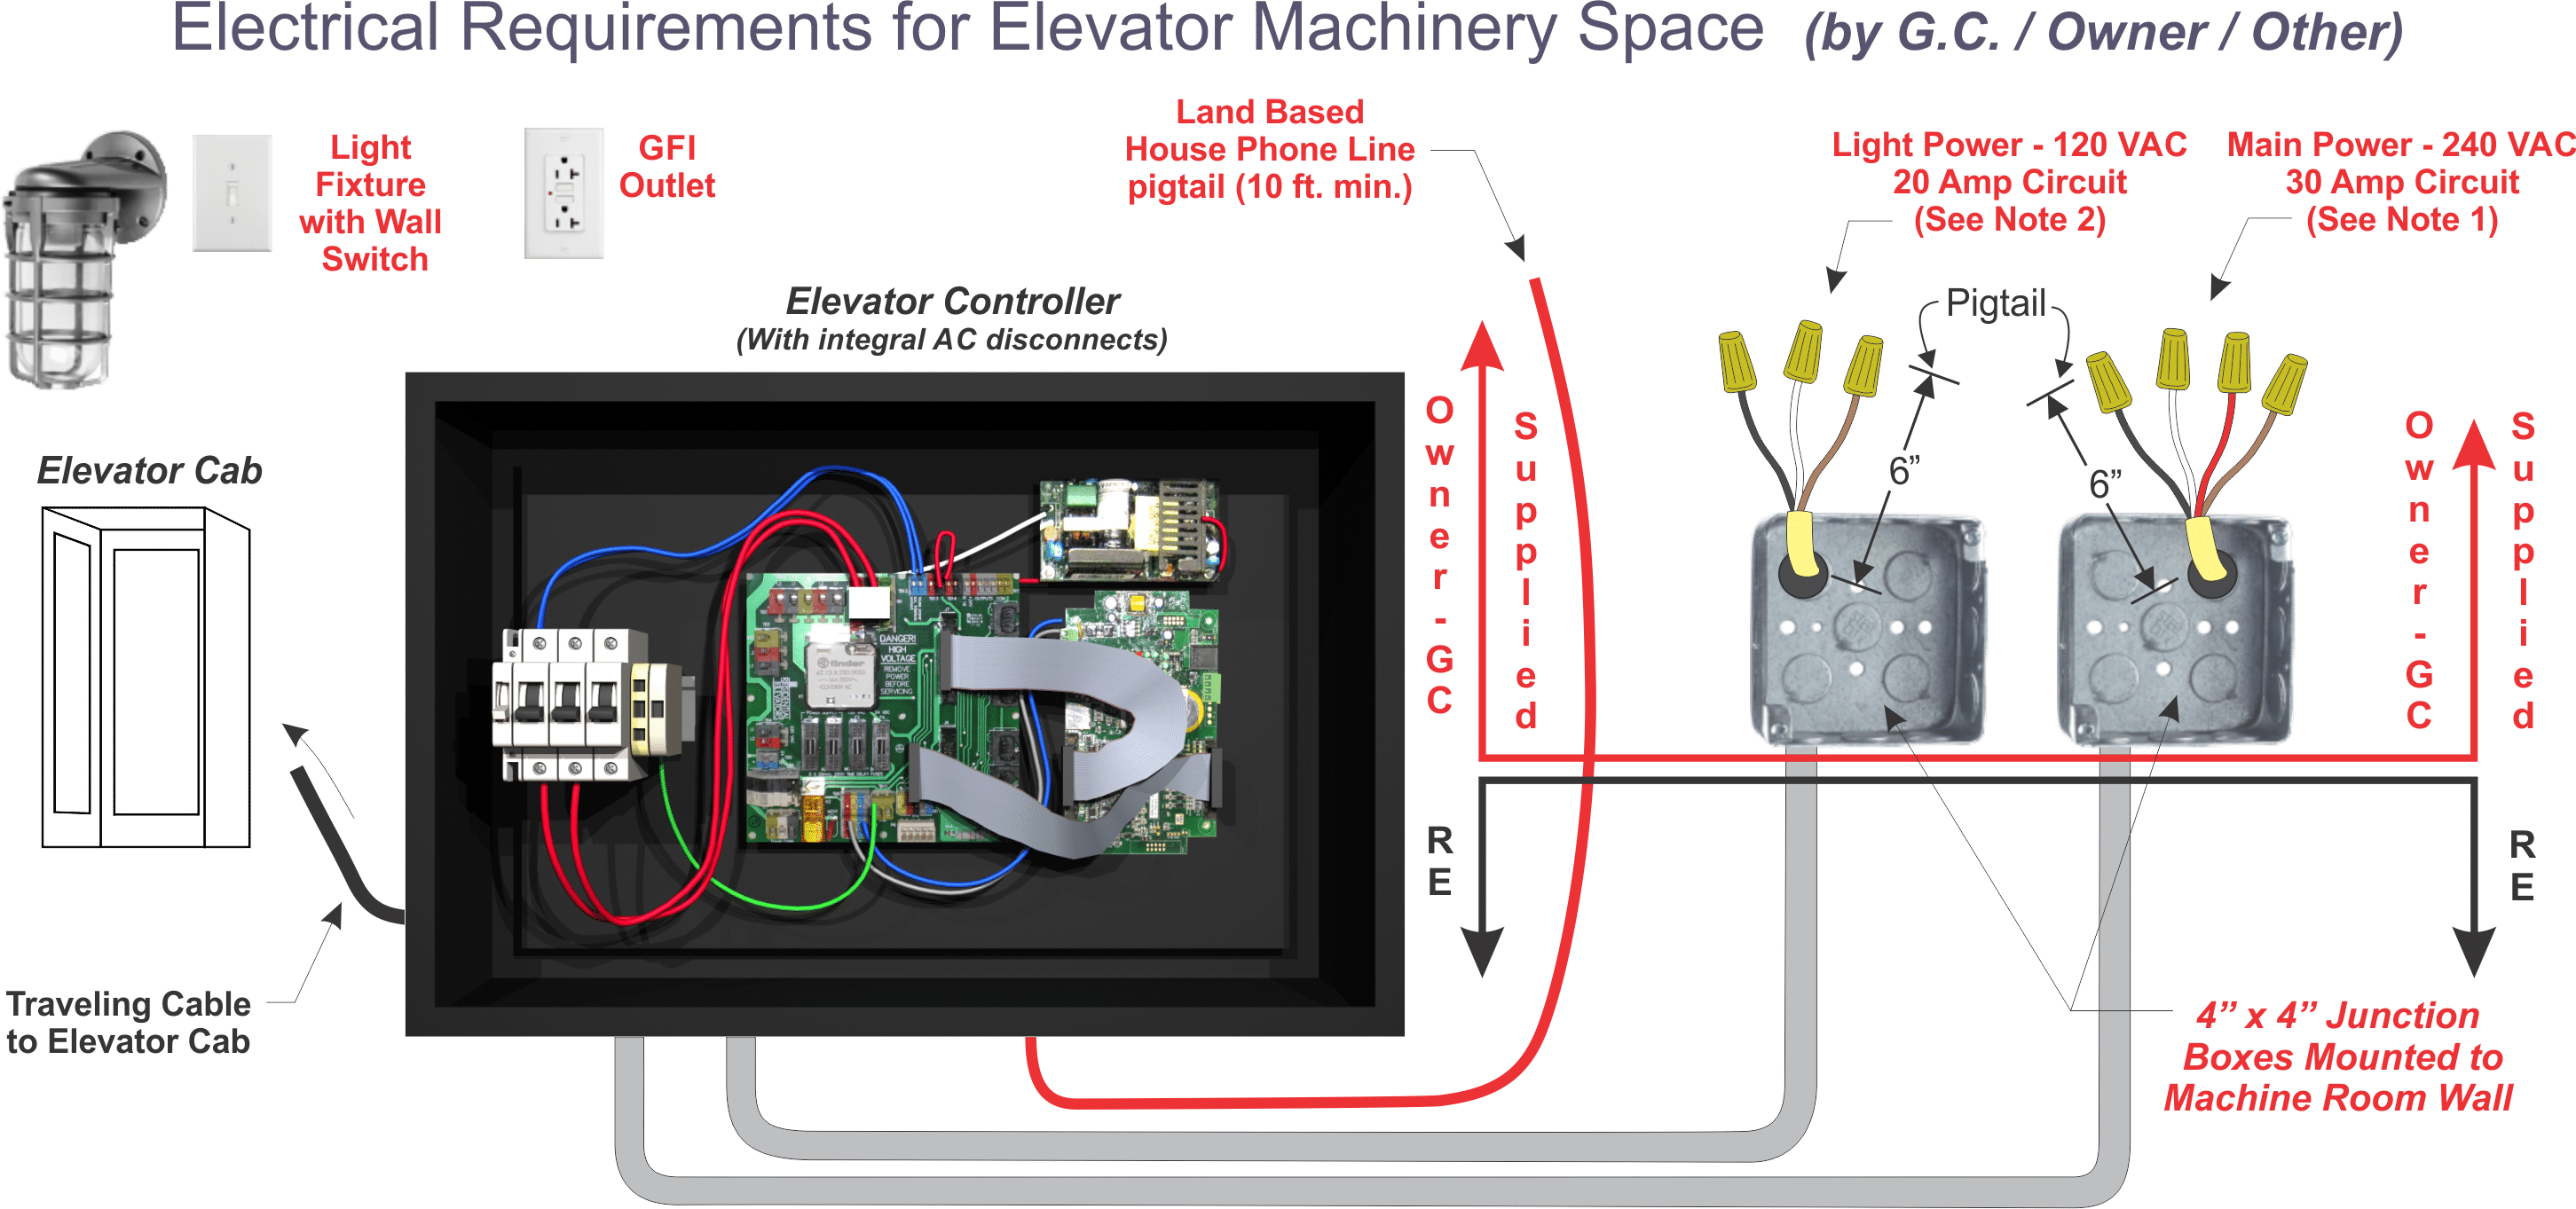 Wiring Circuit For A Contractor Library By General Owner